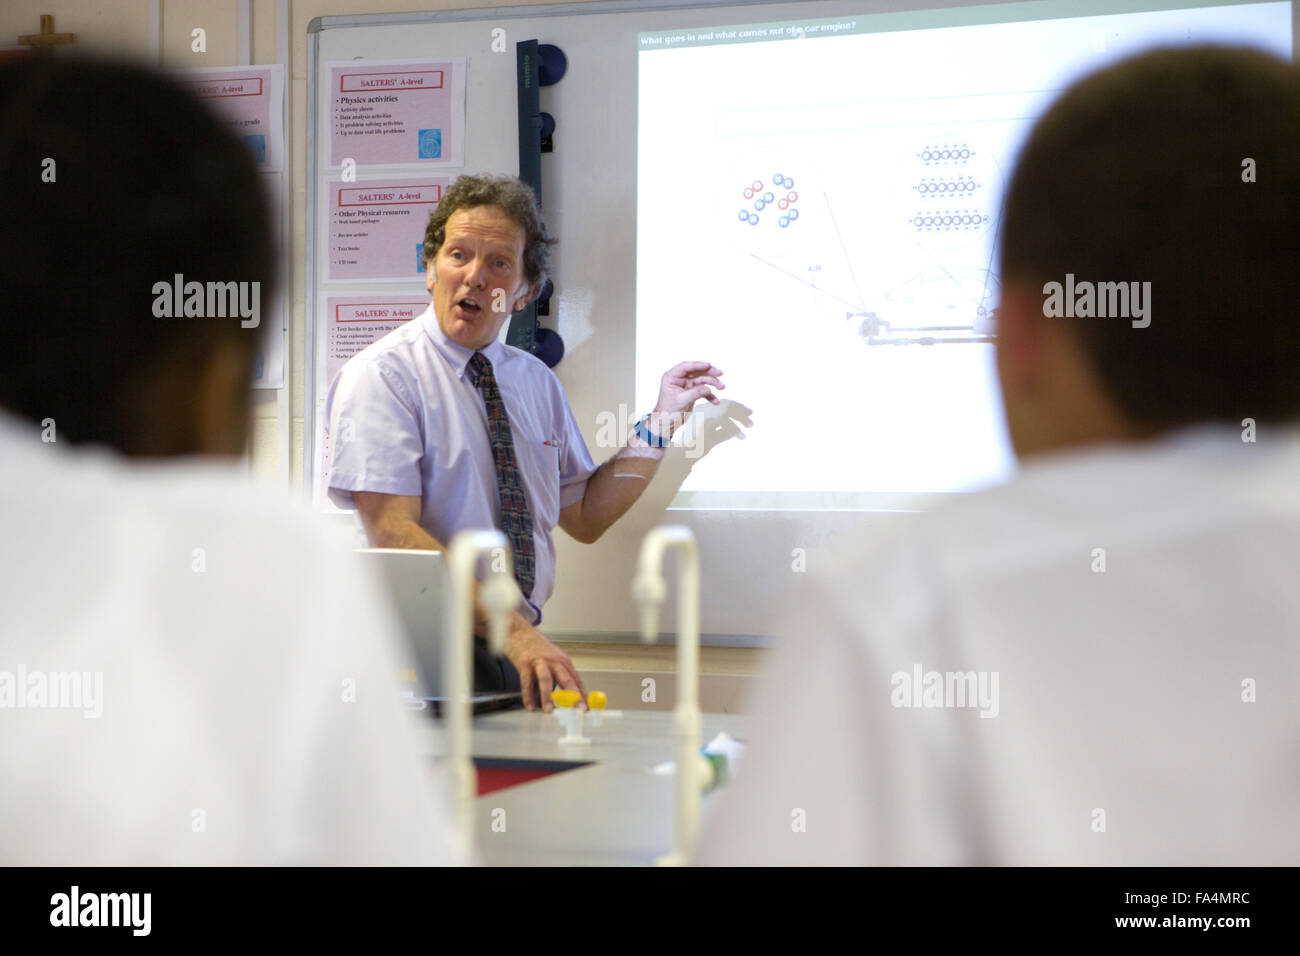 Secondary School teacher using the whiteboard to explain the background to car combustion and air quality - Stock Image